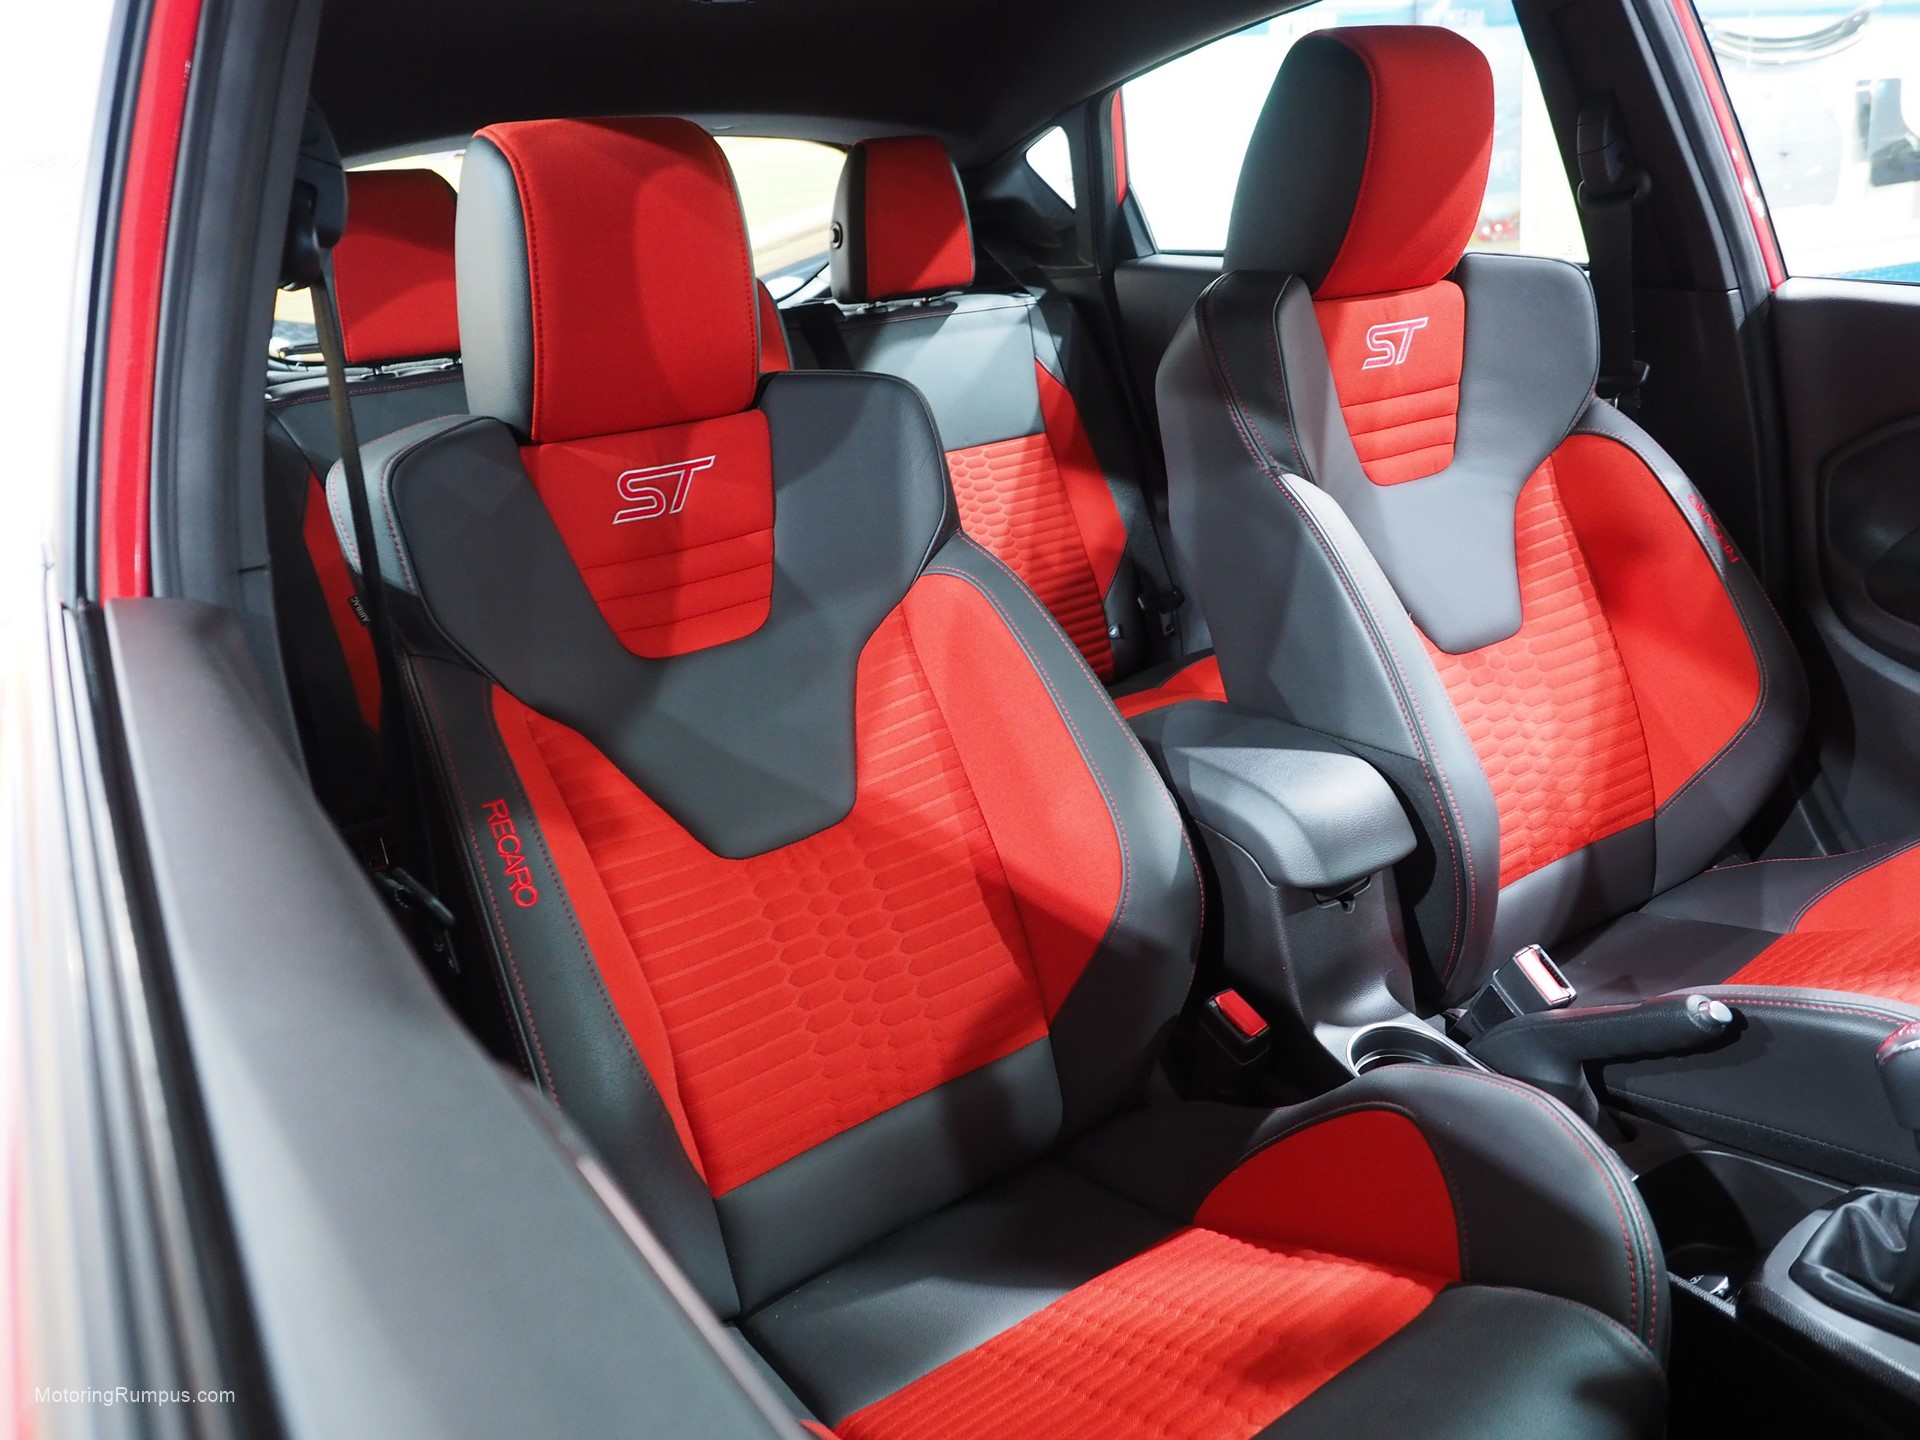 2016 Naias Ford Fiesta St Interior Motoring Rumpus